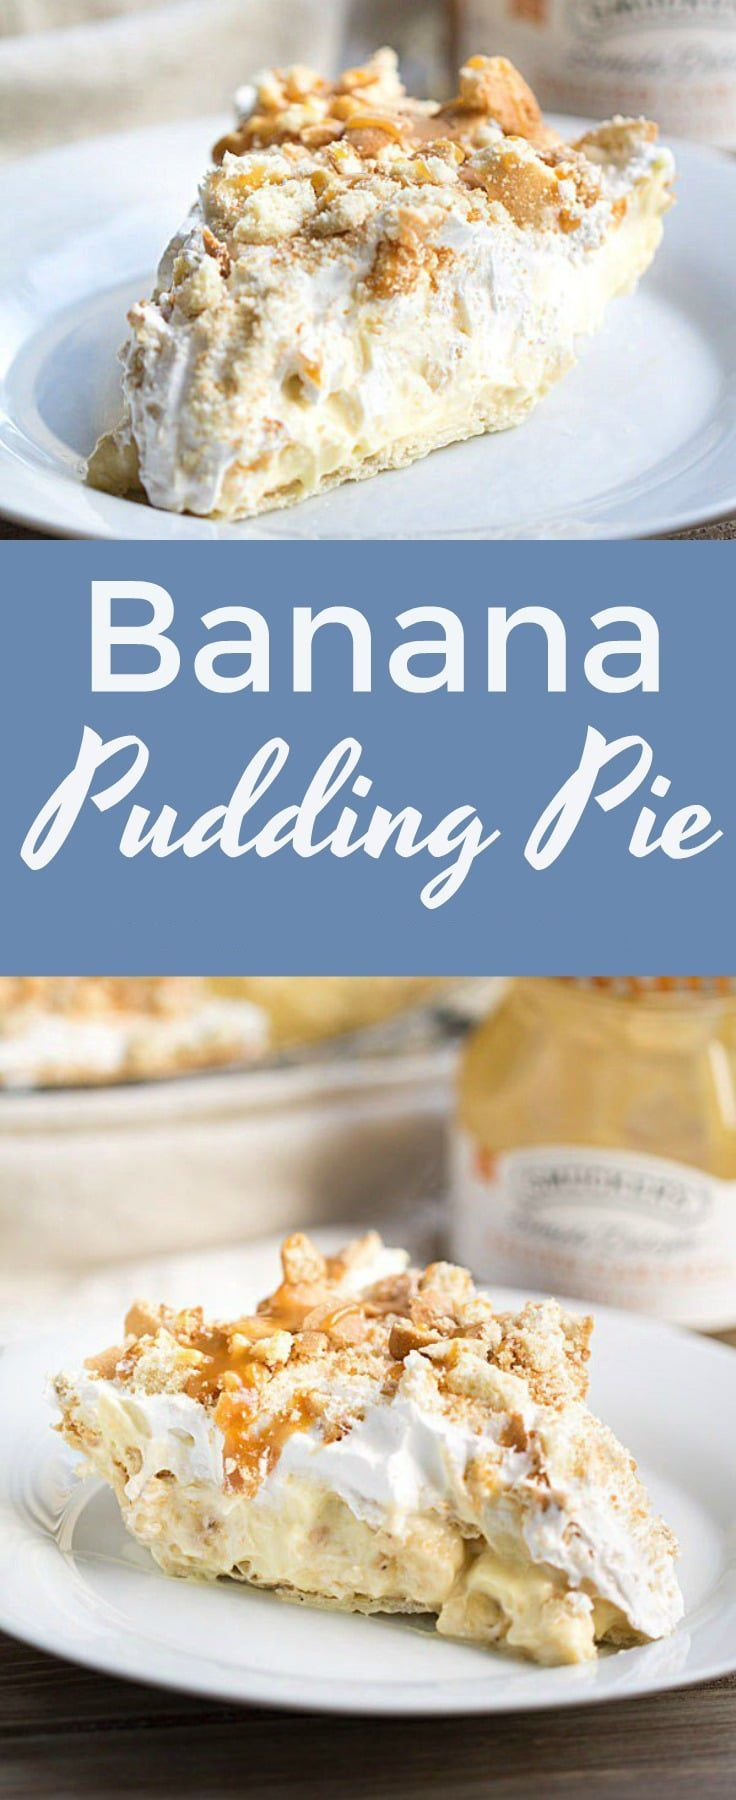 THE BEST EVER BANANA PUDDING PIE RECIPE - This Banana Pudding Pie tastes just like banana pudding, but there's no hassle about distributing it among jars or cups. Everyone gets a heaping slice of creamy, decadent banana goodness! #bananapie